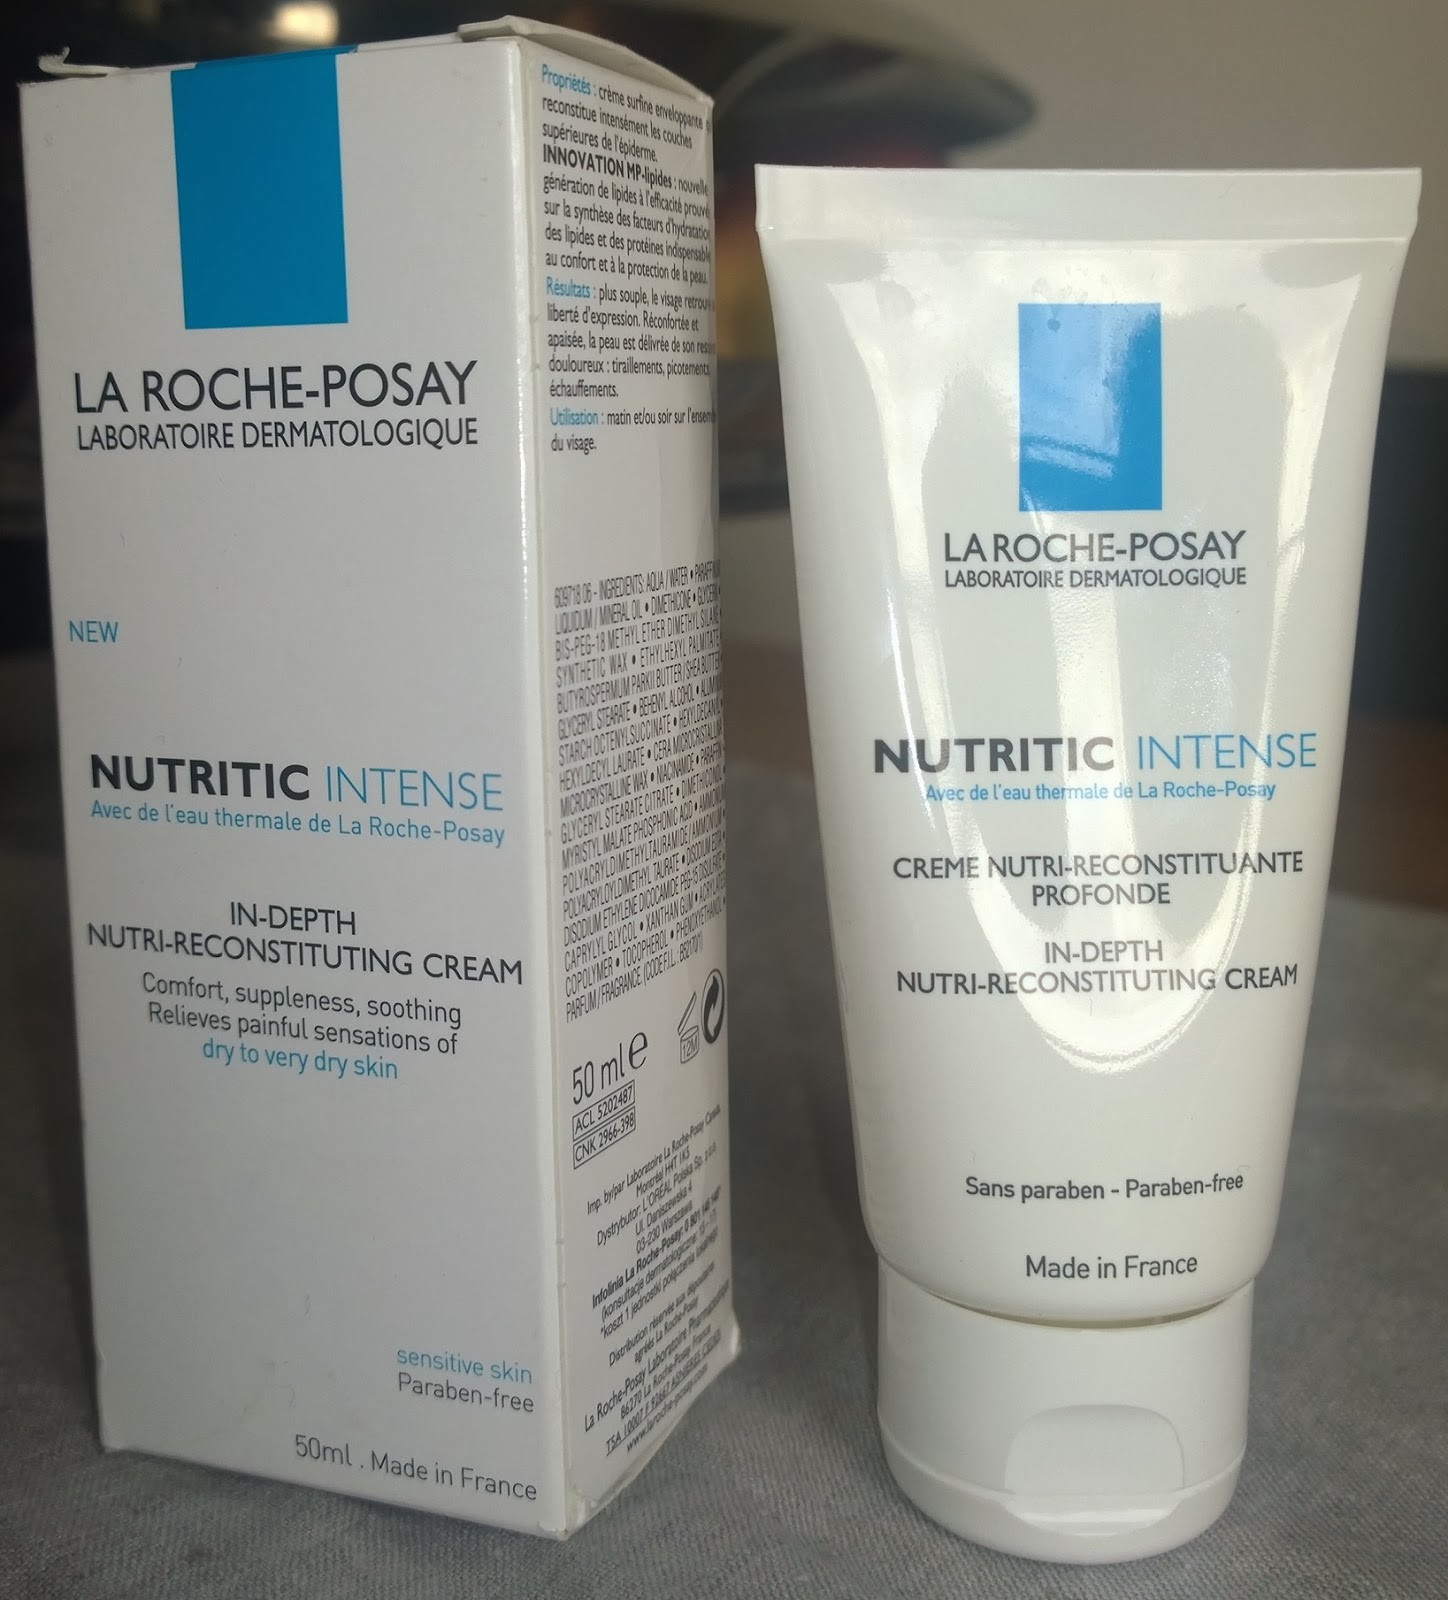 Make Up For Dolls: La Roche-Posay Nutritic Intense – review